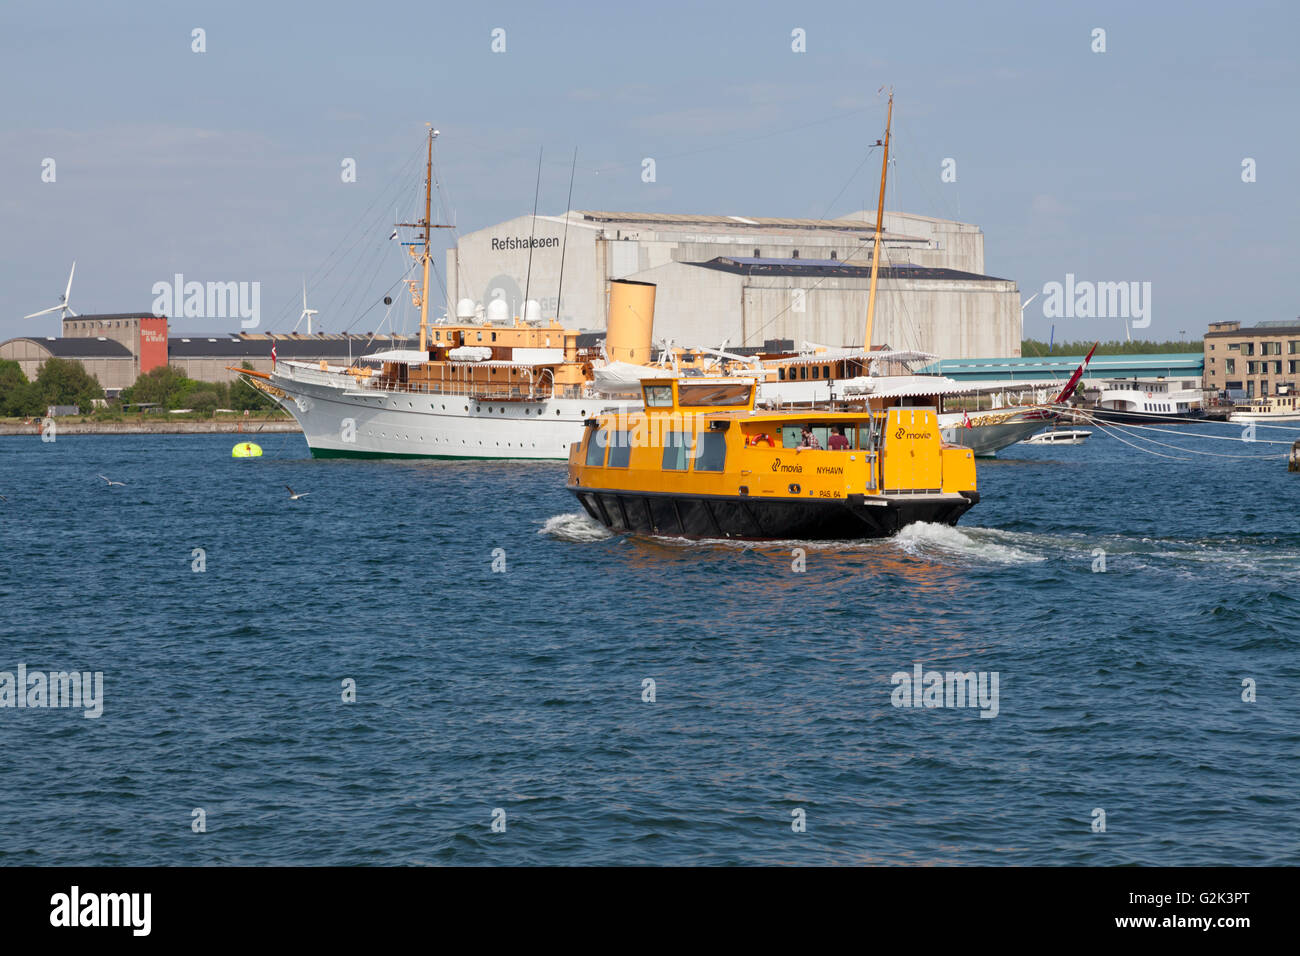 A yellow harbour bus passing the anchored Danish Royal Yacht HDMY Dannebrog at Holmen in the harbour of Copenhagen. - Stock Image